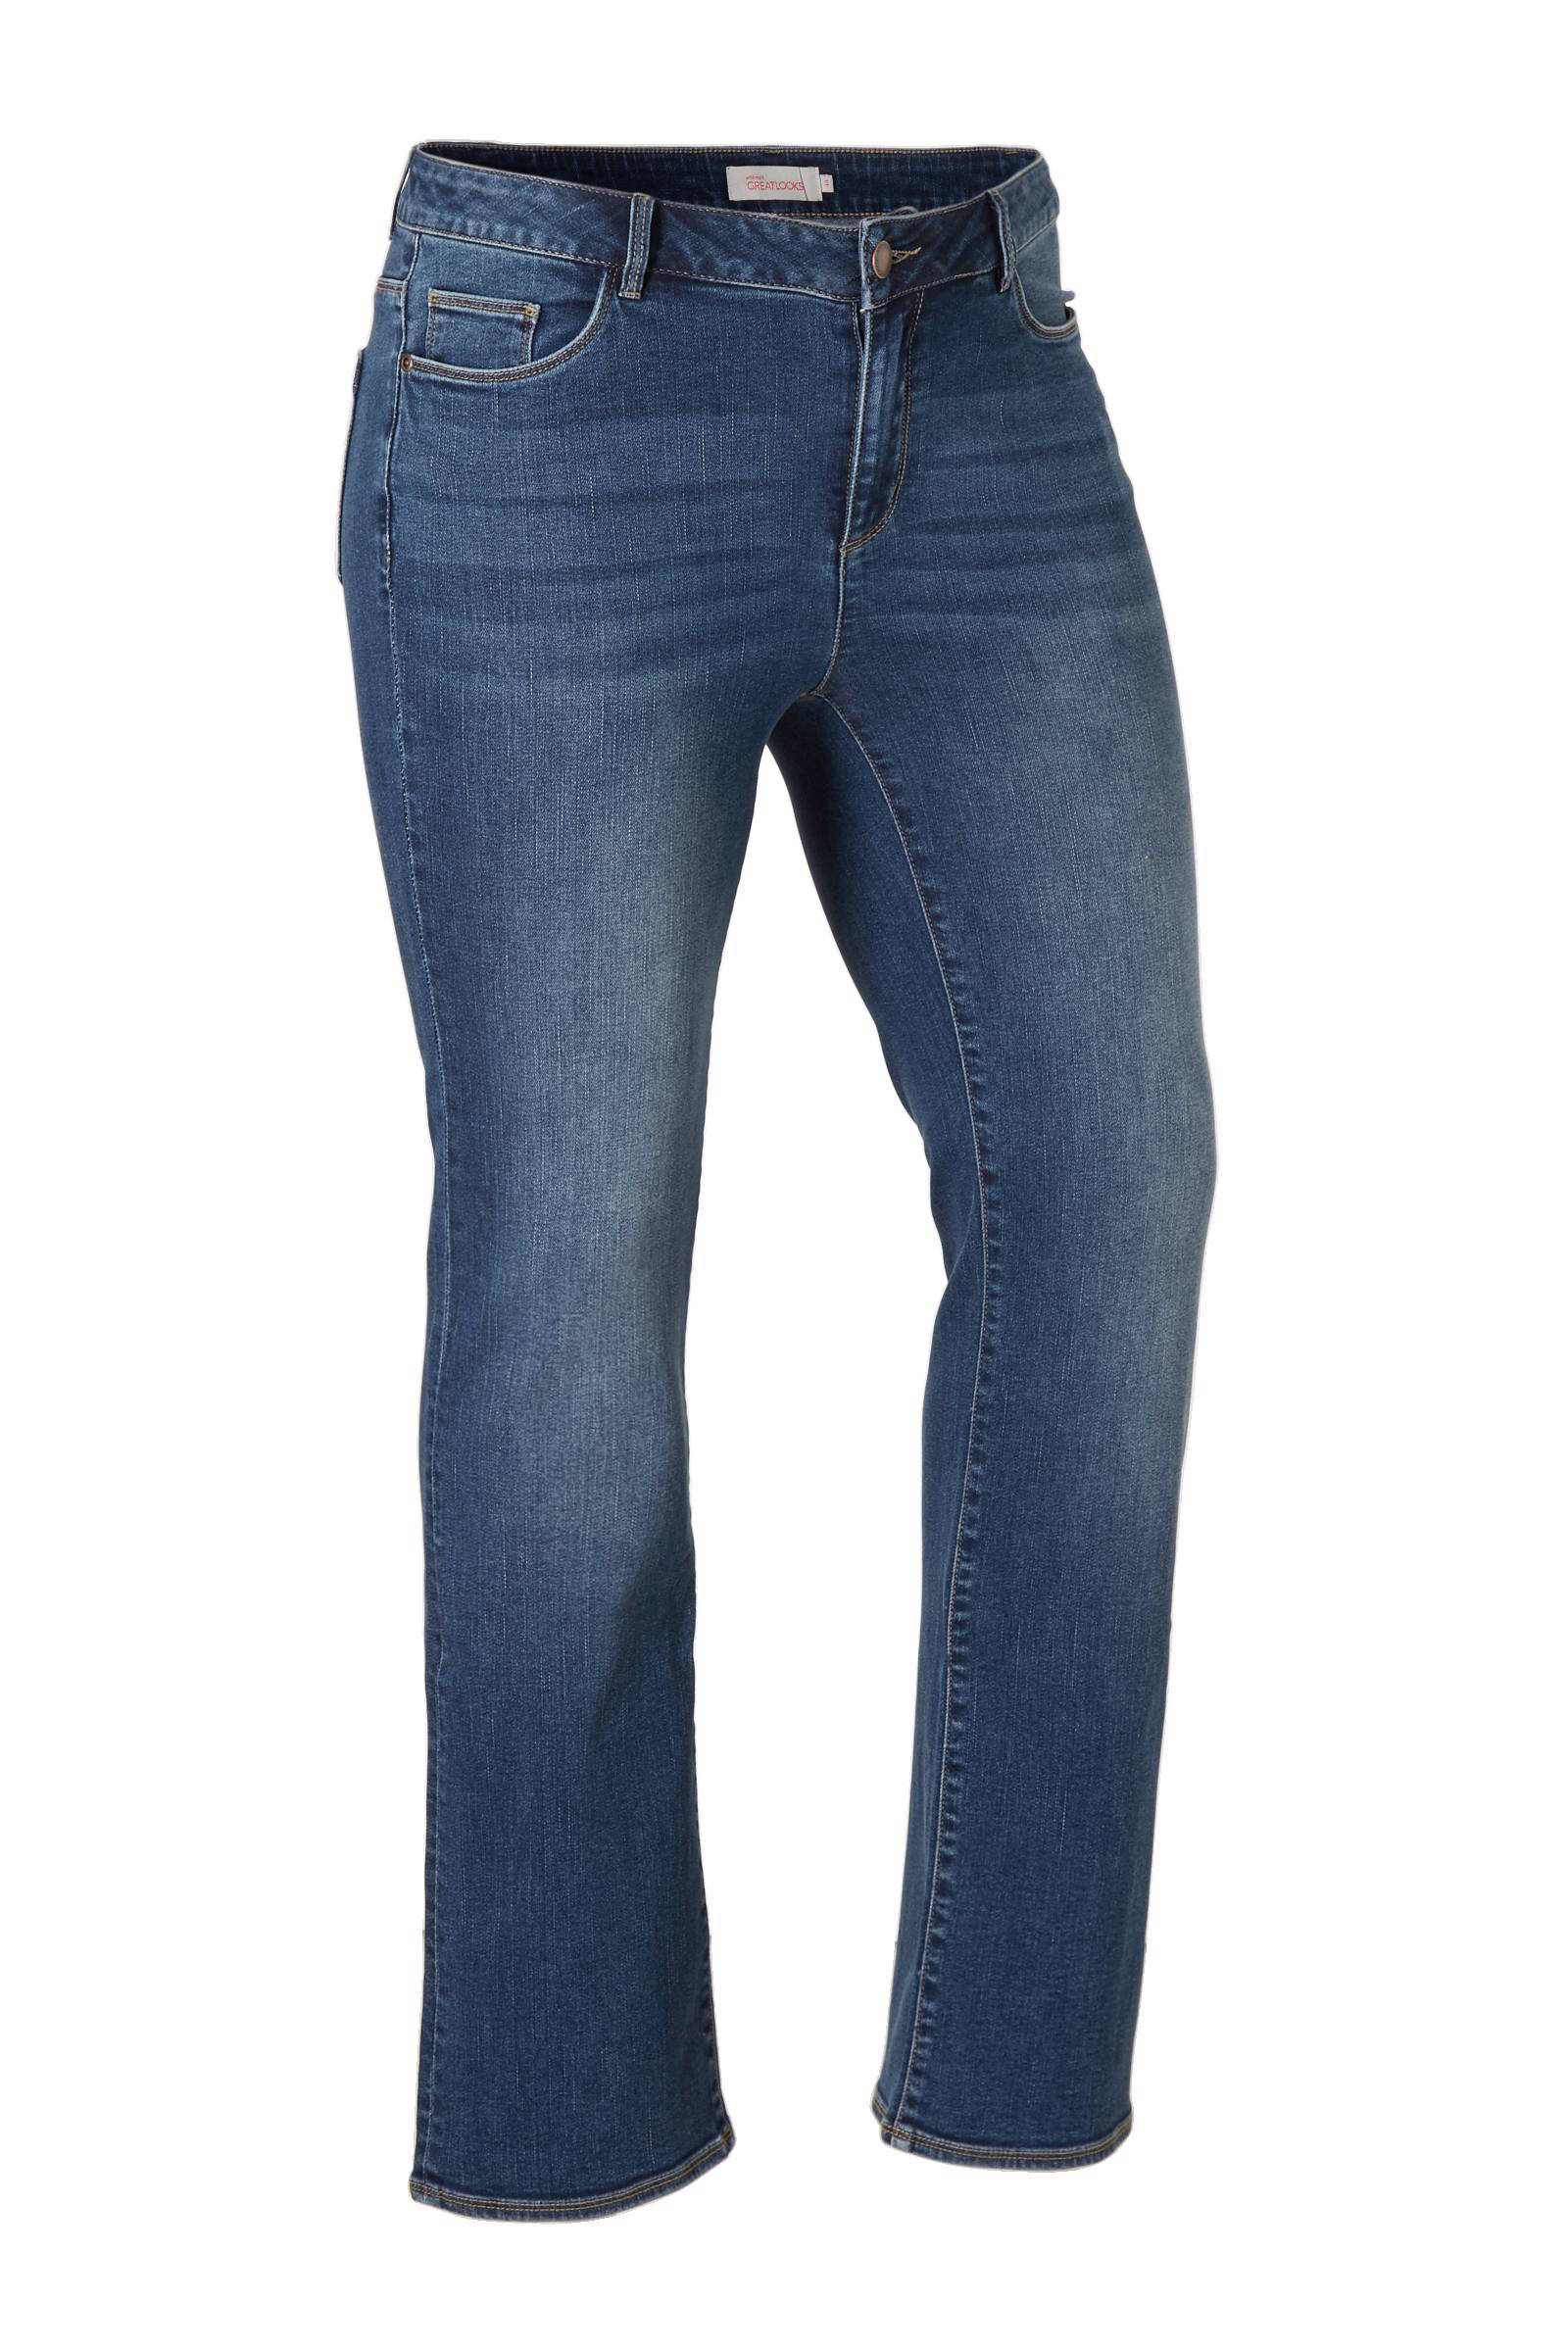 whkmp's great looks bootcut jeans (dames)